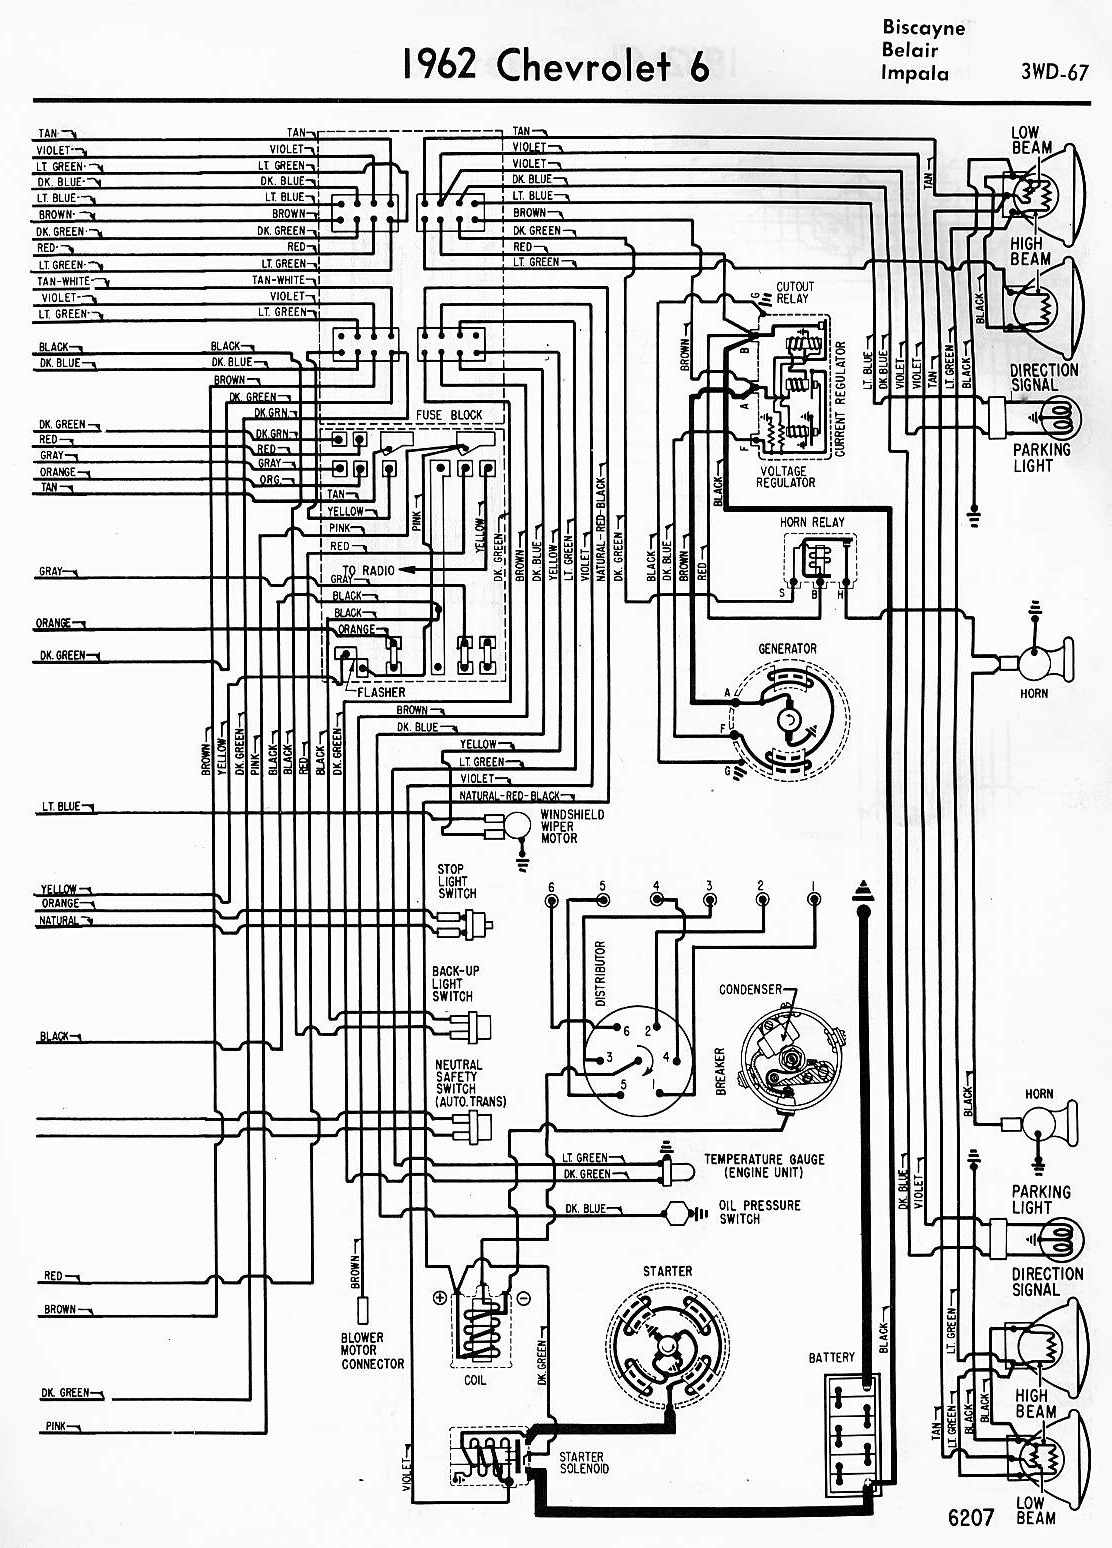 Electrical+Wiring+Diagram+Of+1964+Chevrolet+6 2011 impala wiring diagram 2005 impala ignition wiring diagram 66 impala wiring diagram at virtualis.co